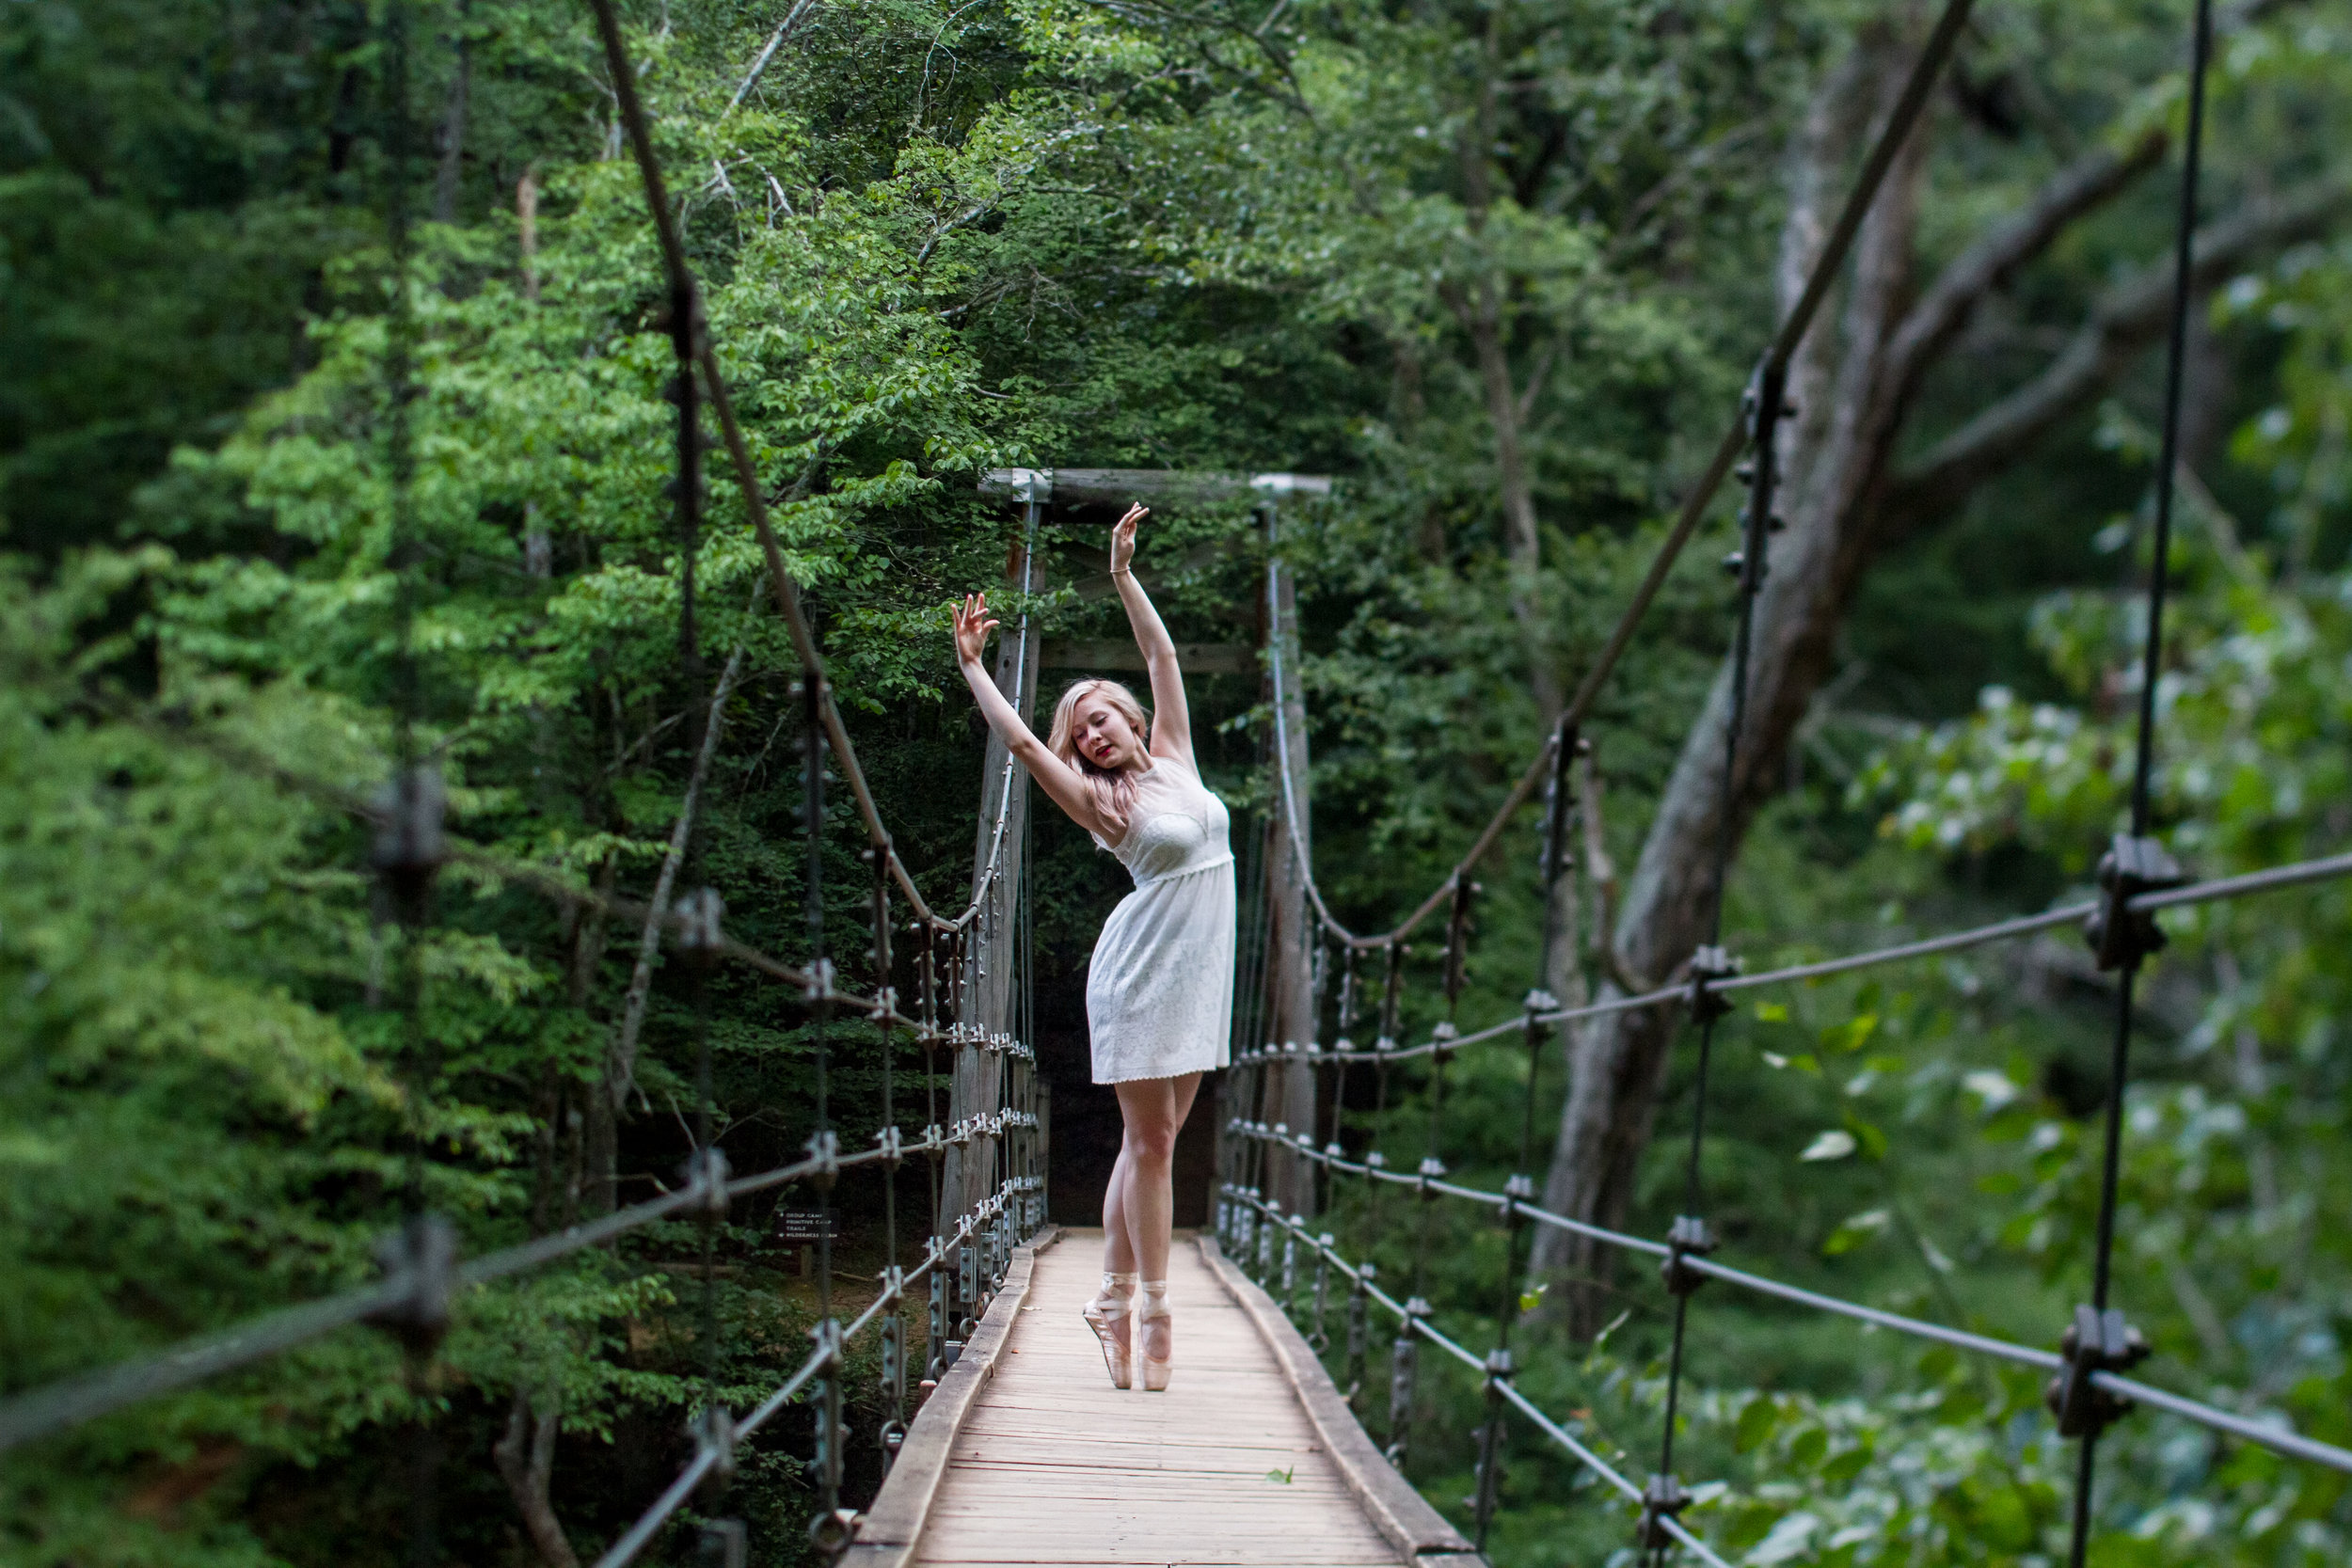 Adrienne Hoarfrost - Click to view the shots from Adrienne's Eno River Swing bridge shoot!